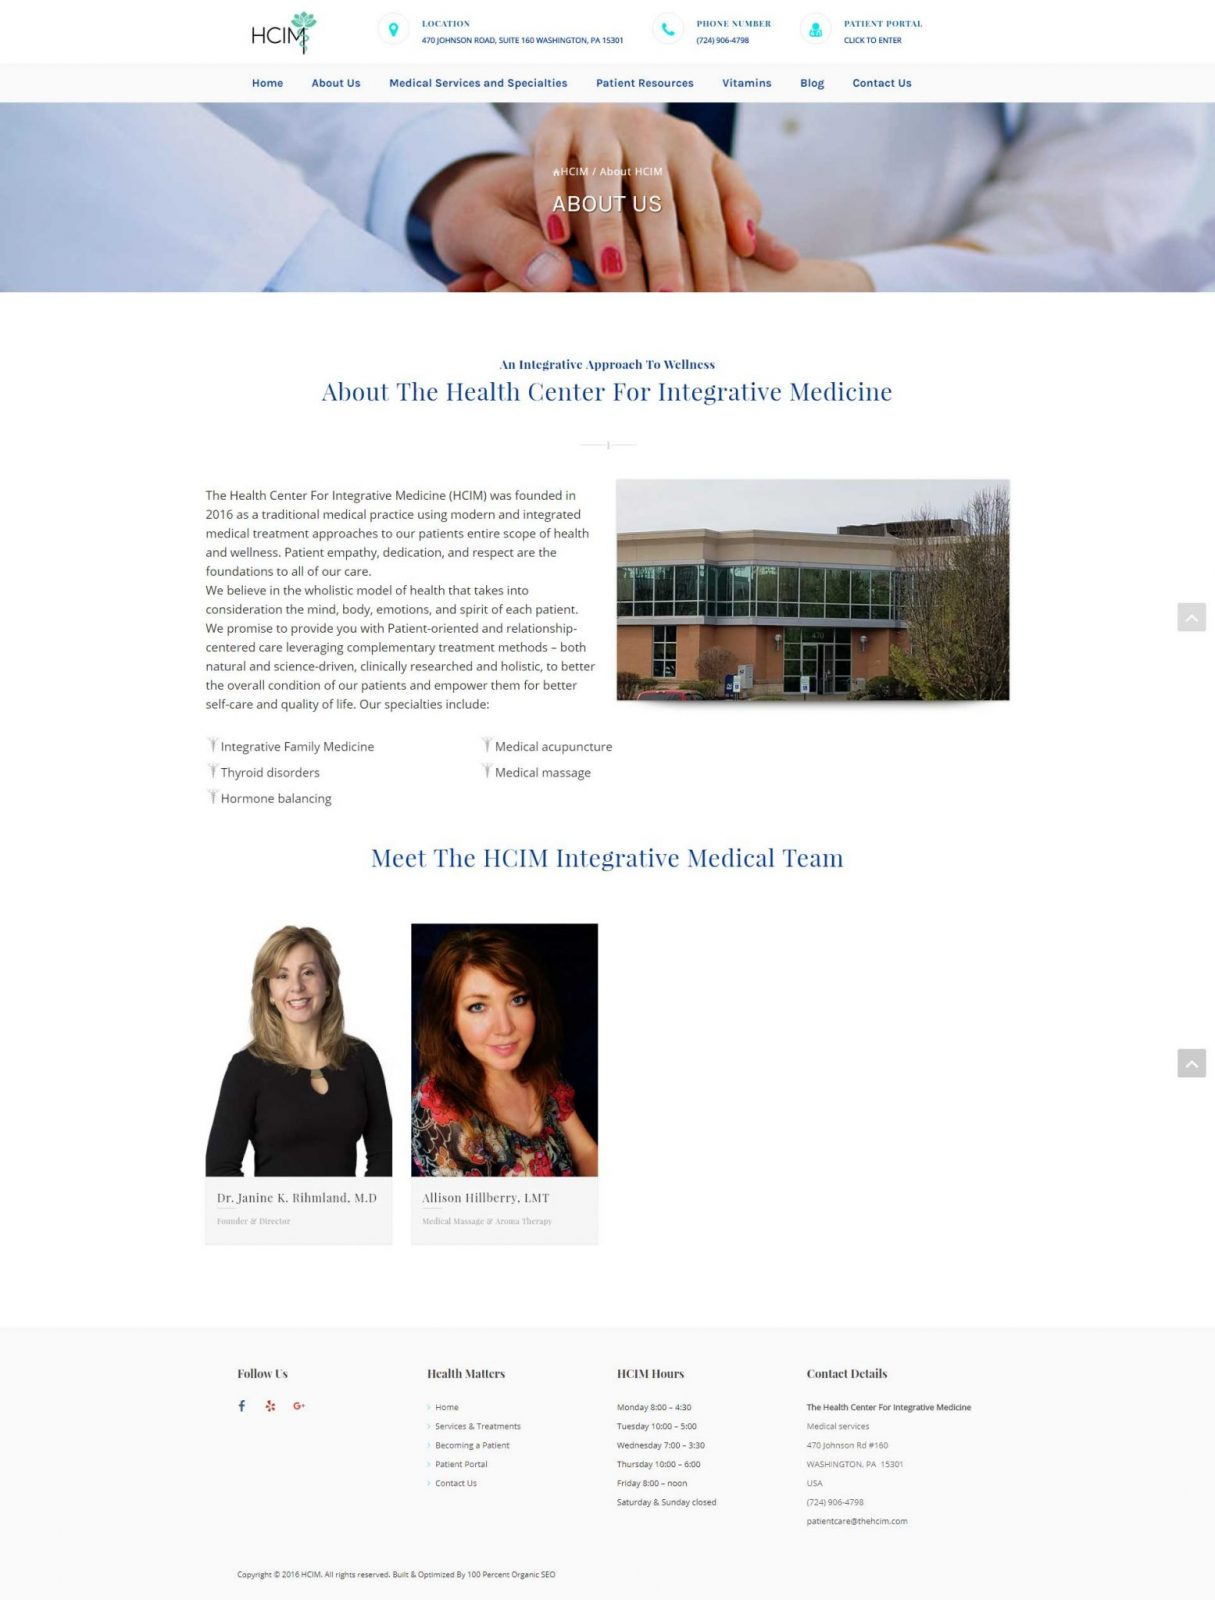 The-Health-Center-For-Integrative-Medicine-Website-About-Us